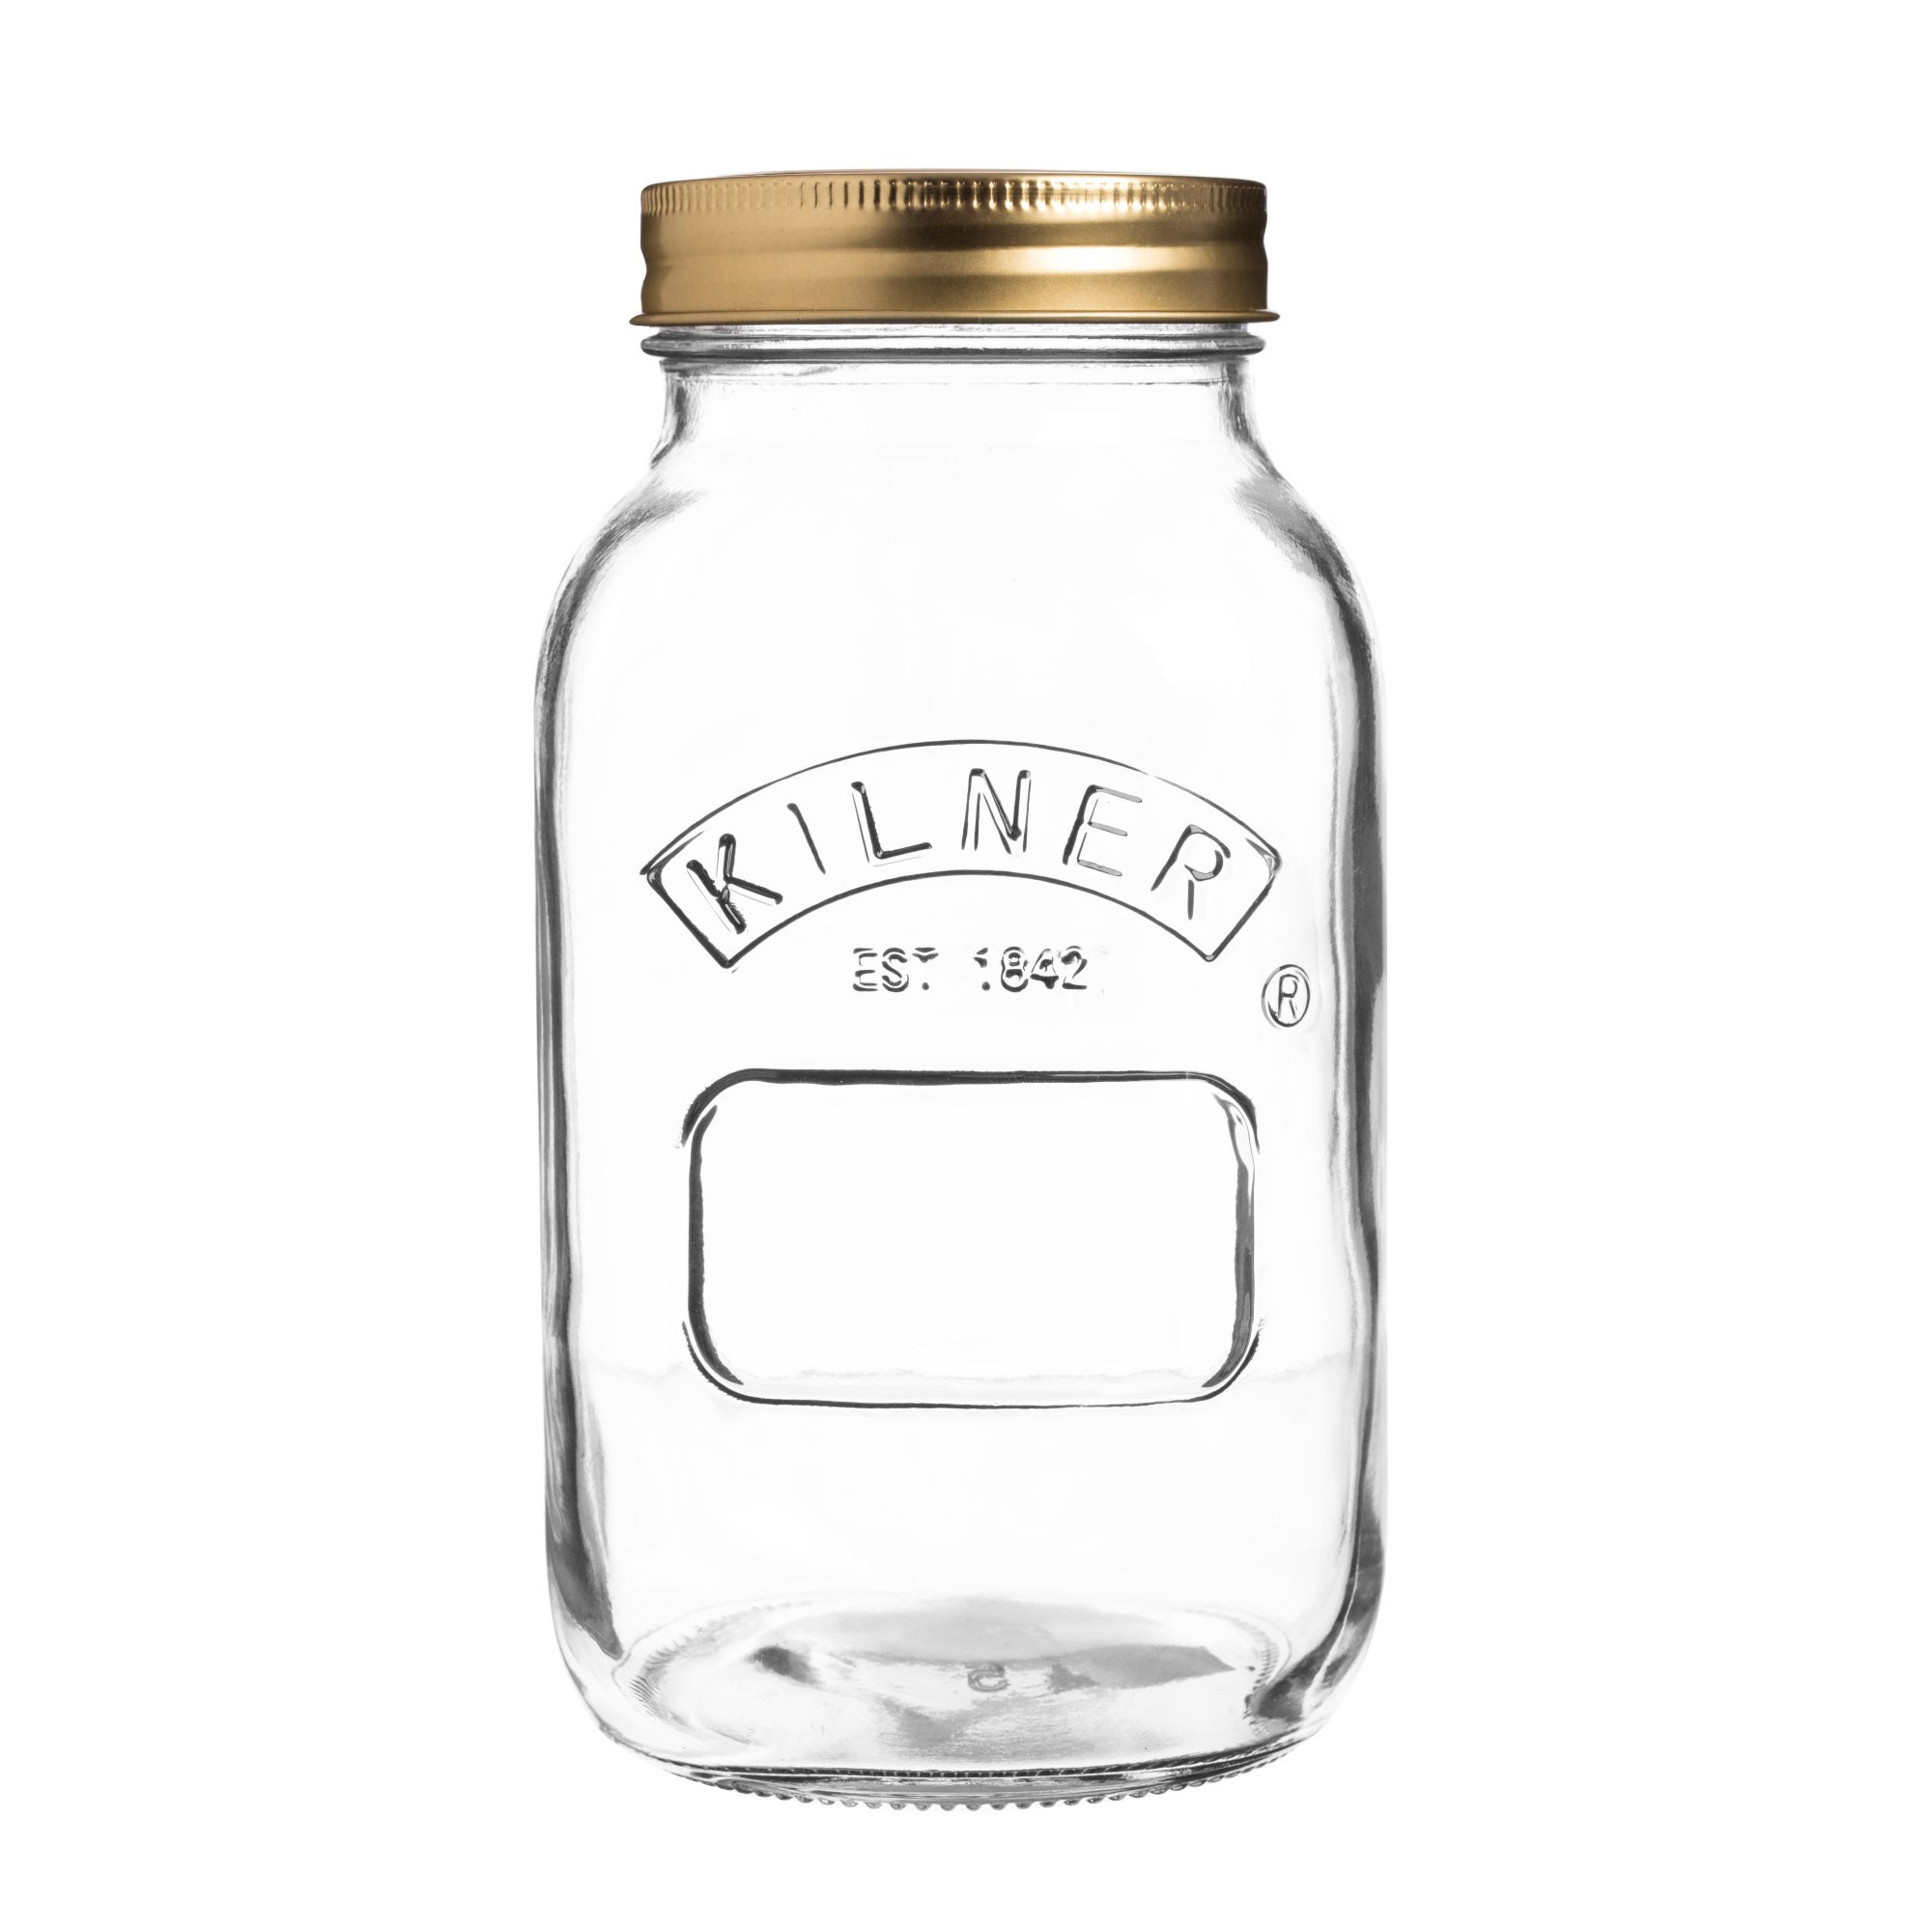 Kilner 1 Litre Preserving Jar